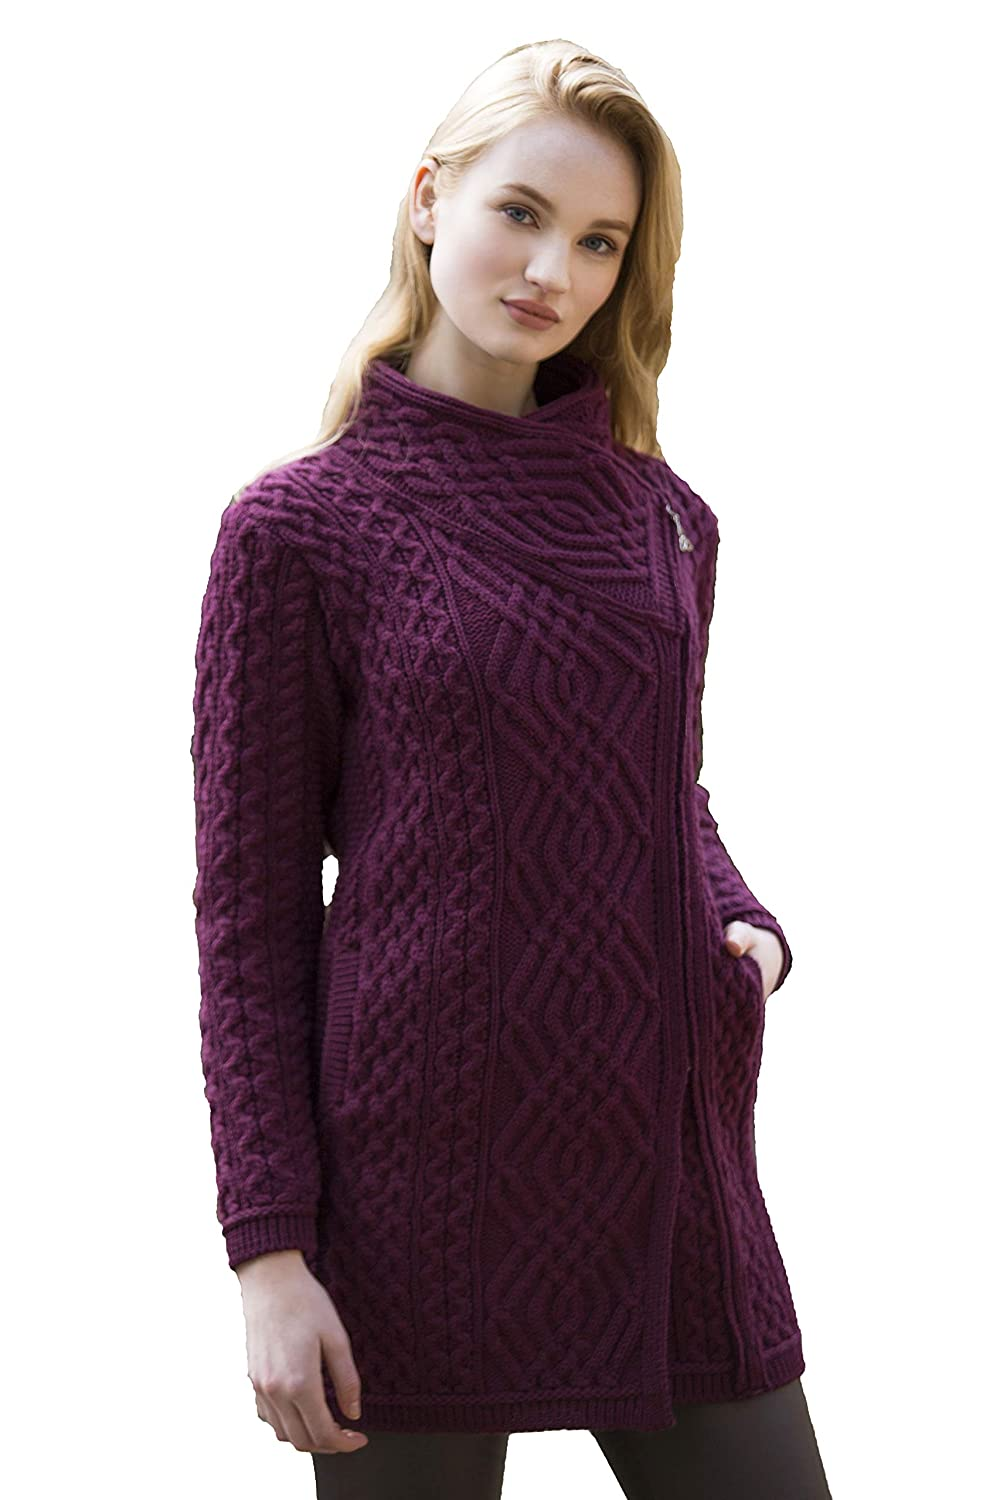 Wine Aran Crafts Cable Knit Side Zip Coat (100% Merino Wool) in Wine, Grey, Army Green Colours